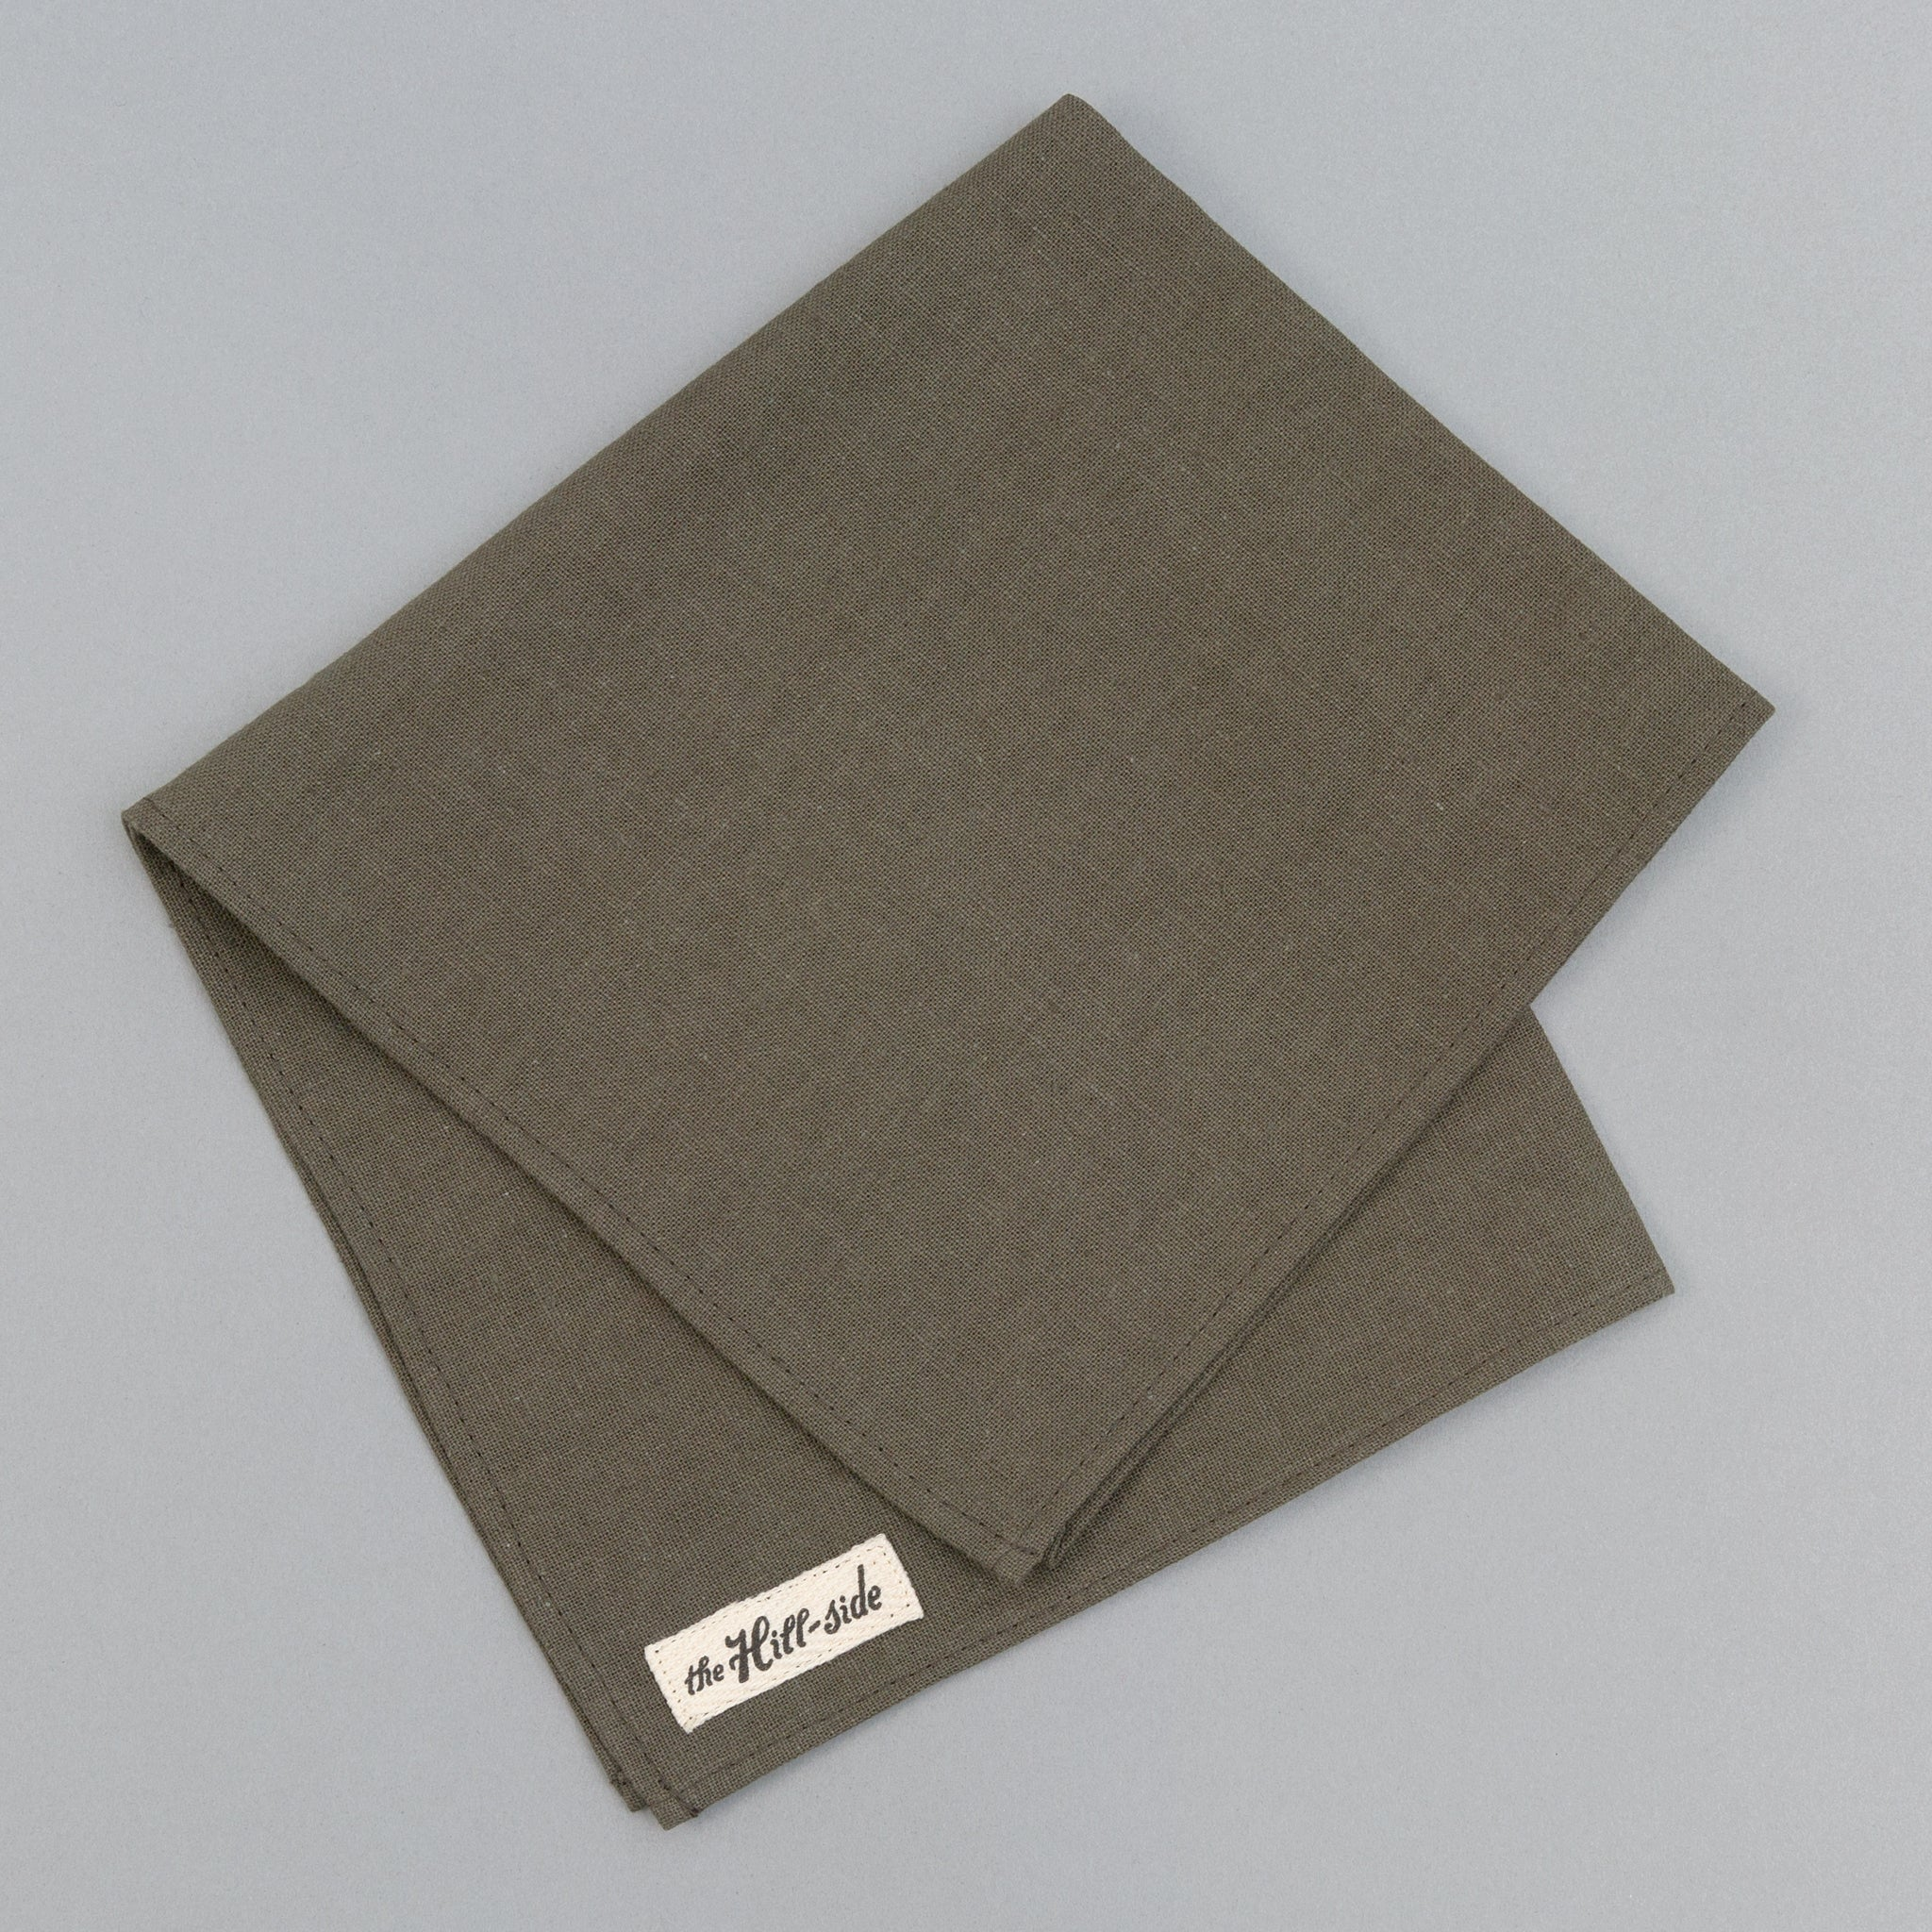 The Hill-Side - Linen / Cotton Oxford Pocket Square, Olive - PS1-417 - image 1